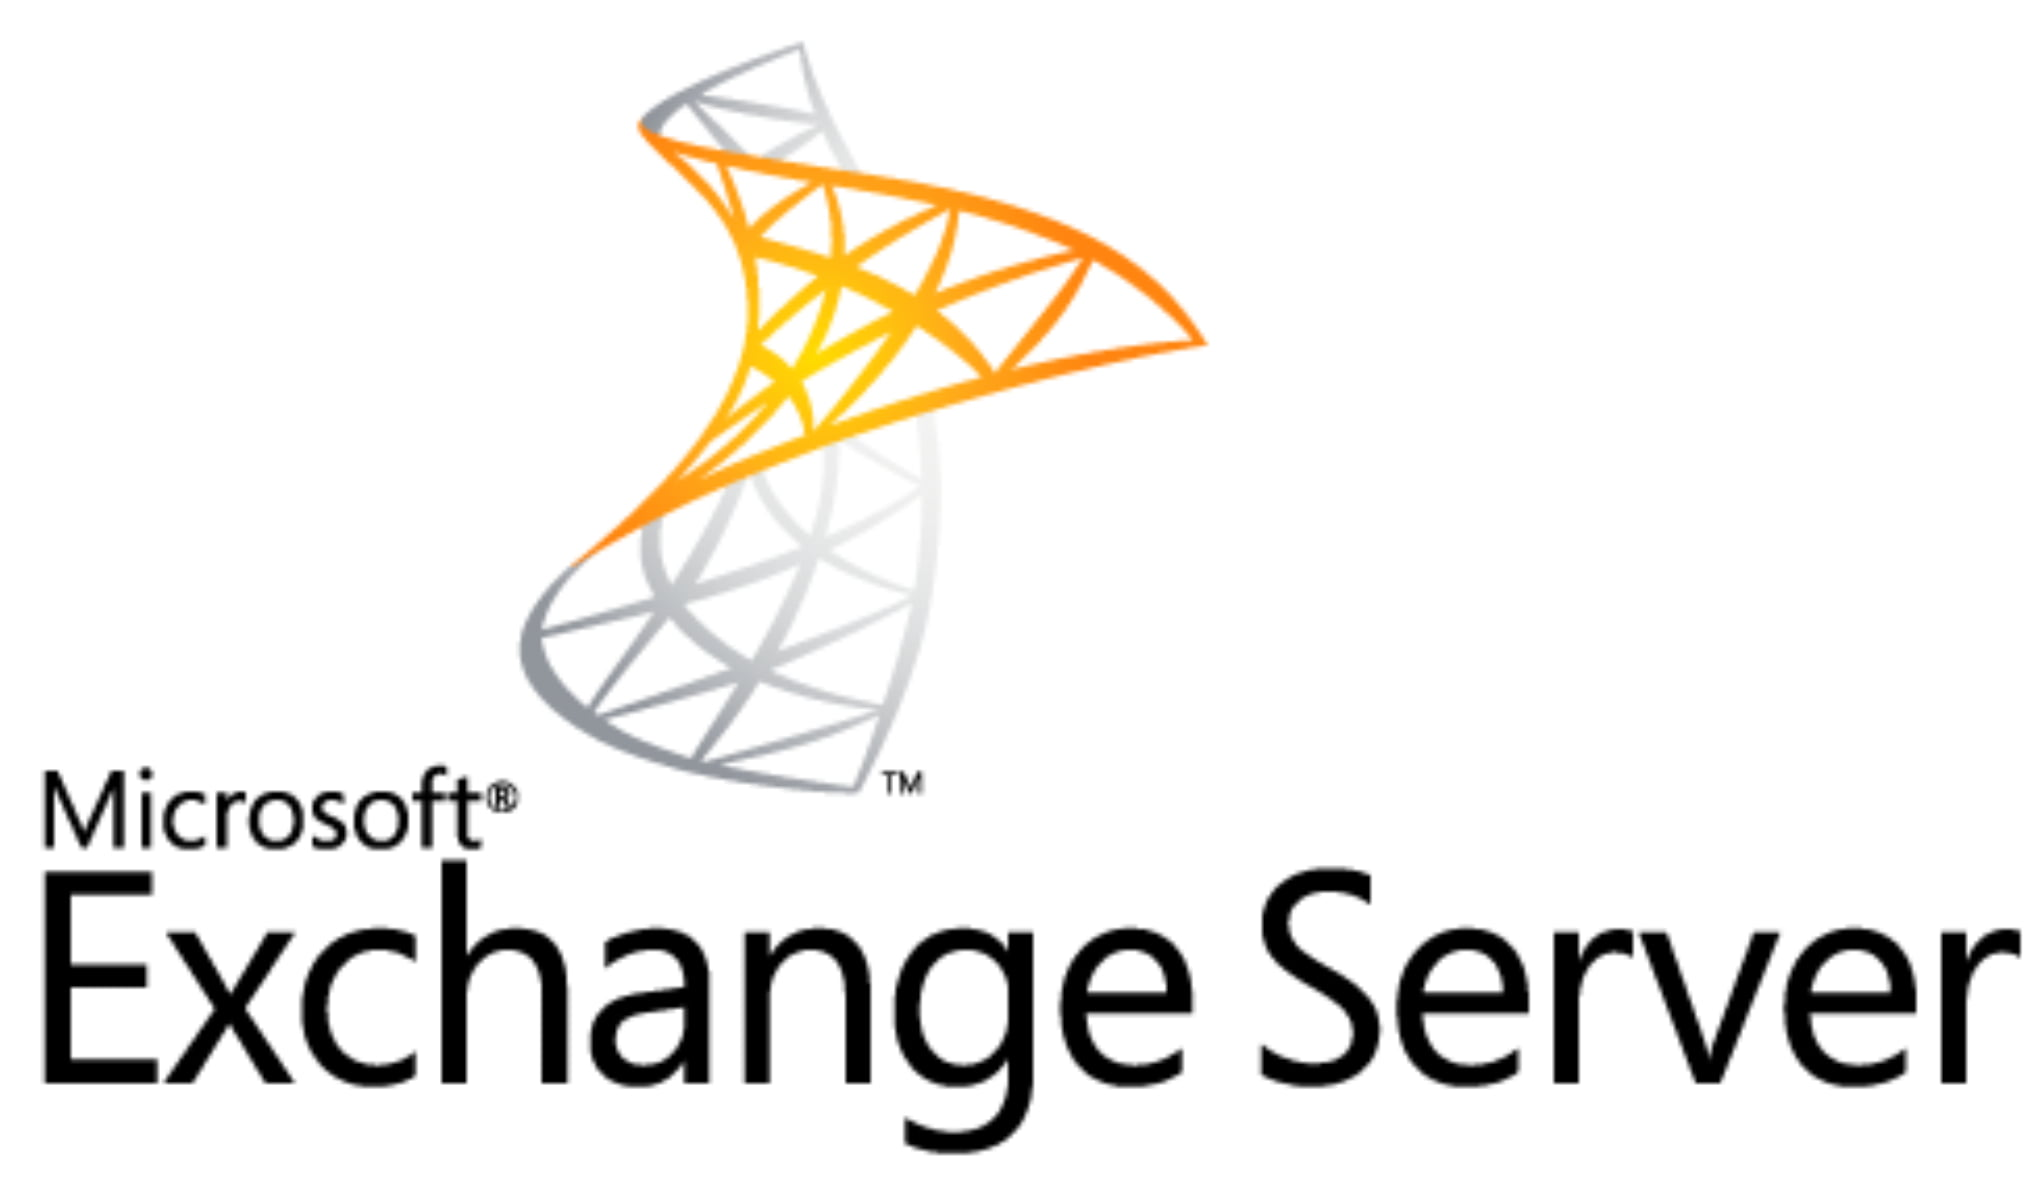 Как установить сертификат SSL на Microsoft Exchange Server 2013